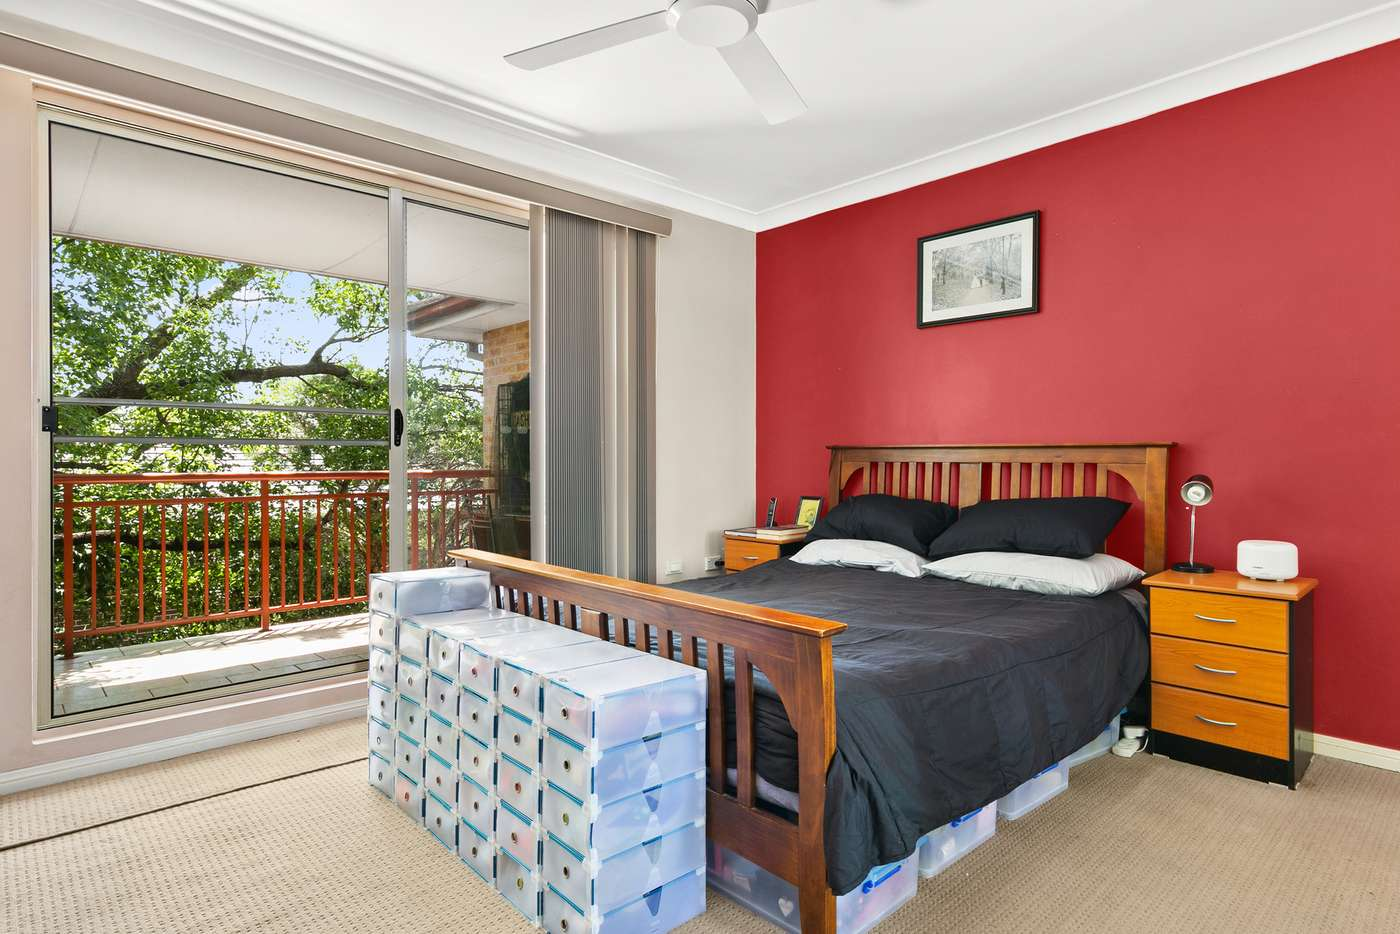 Sixth view of Homely apartment listing, 16/46-48 Carnarvon Street, Silverwater NSW 2128